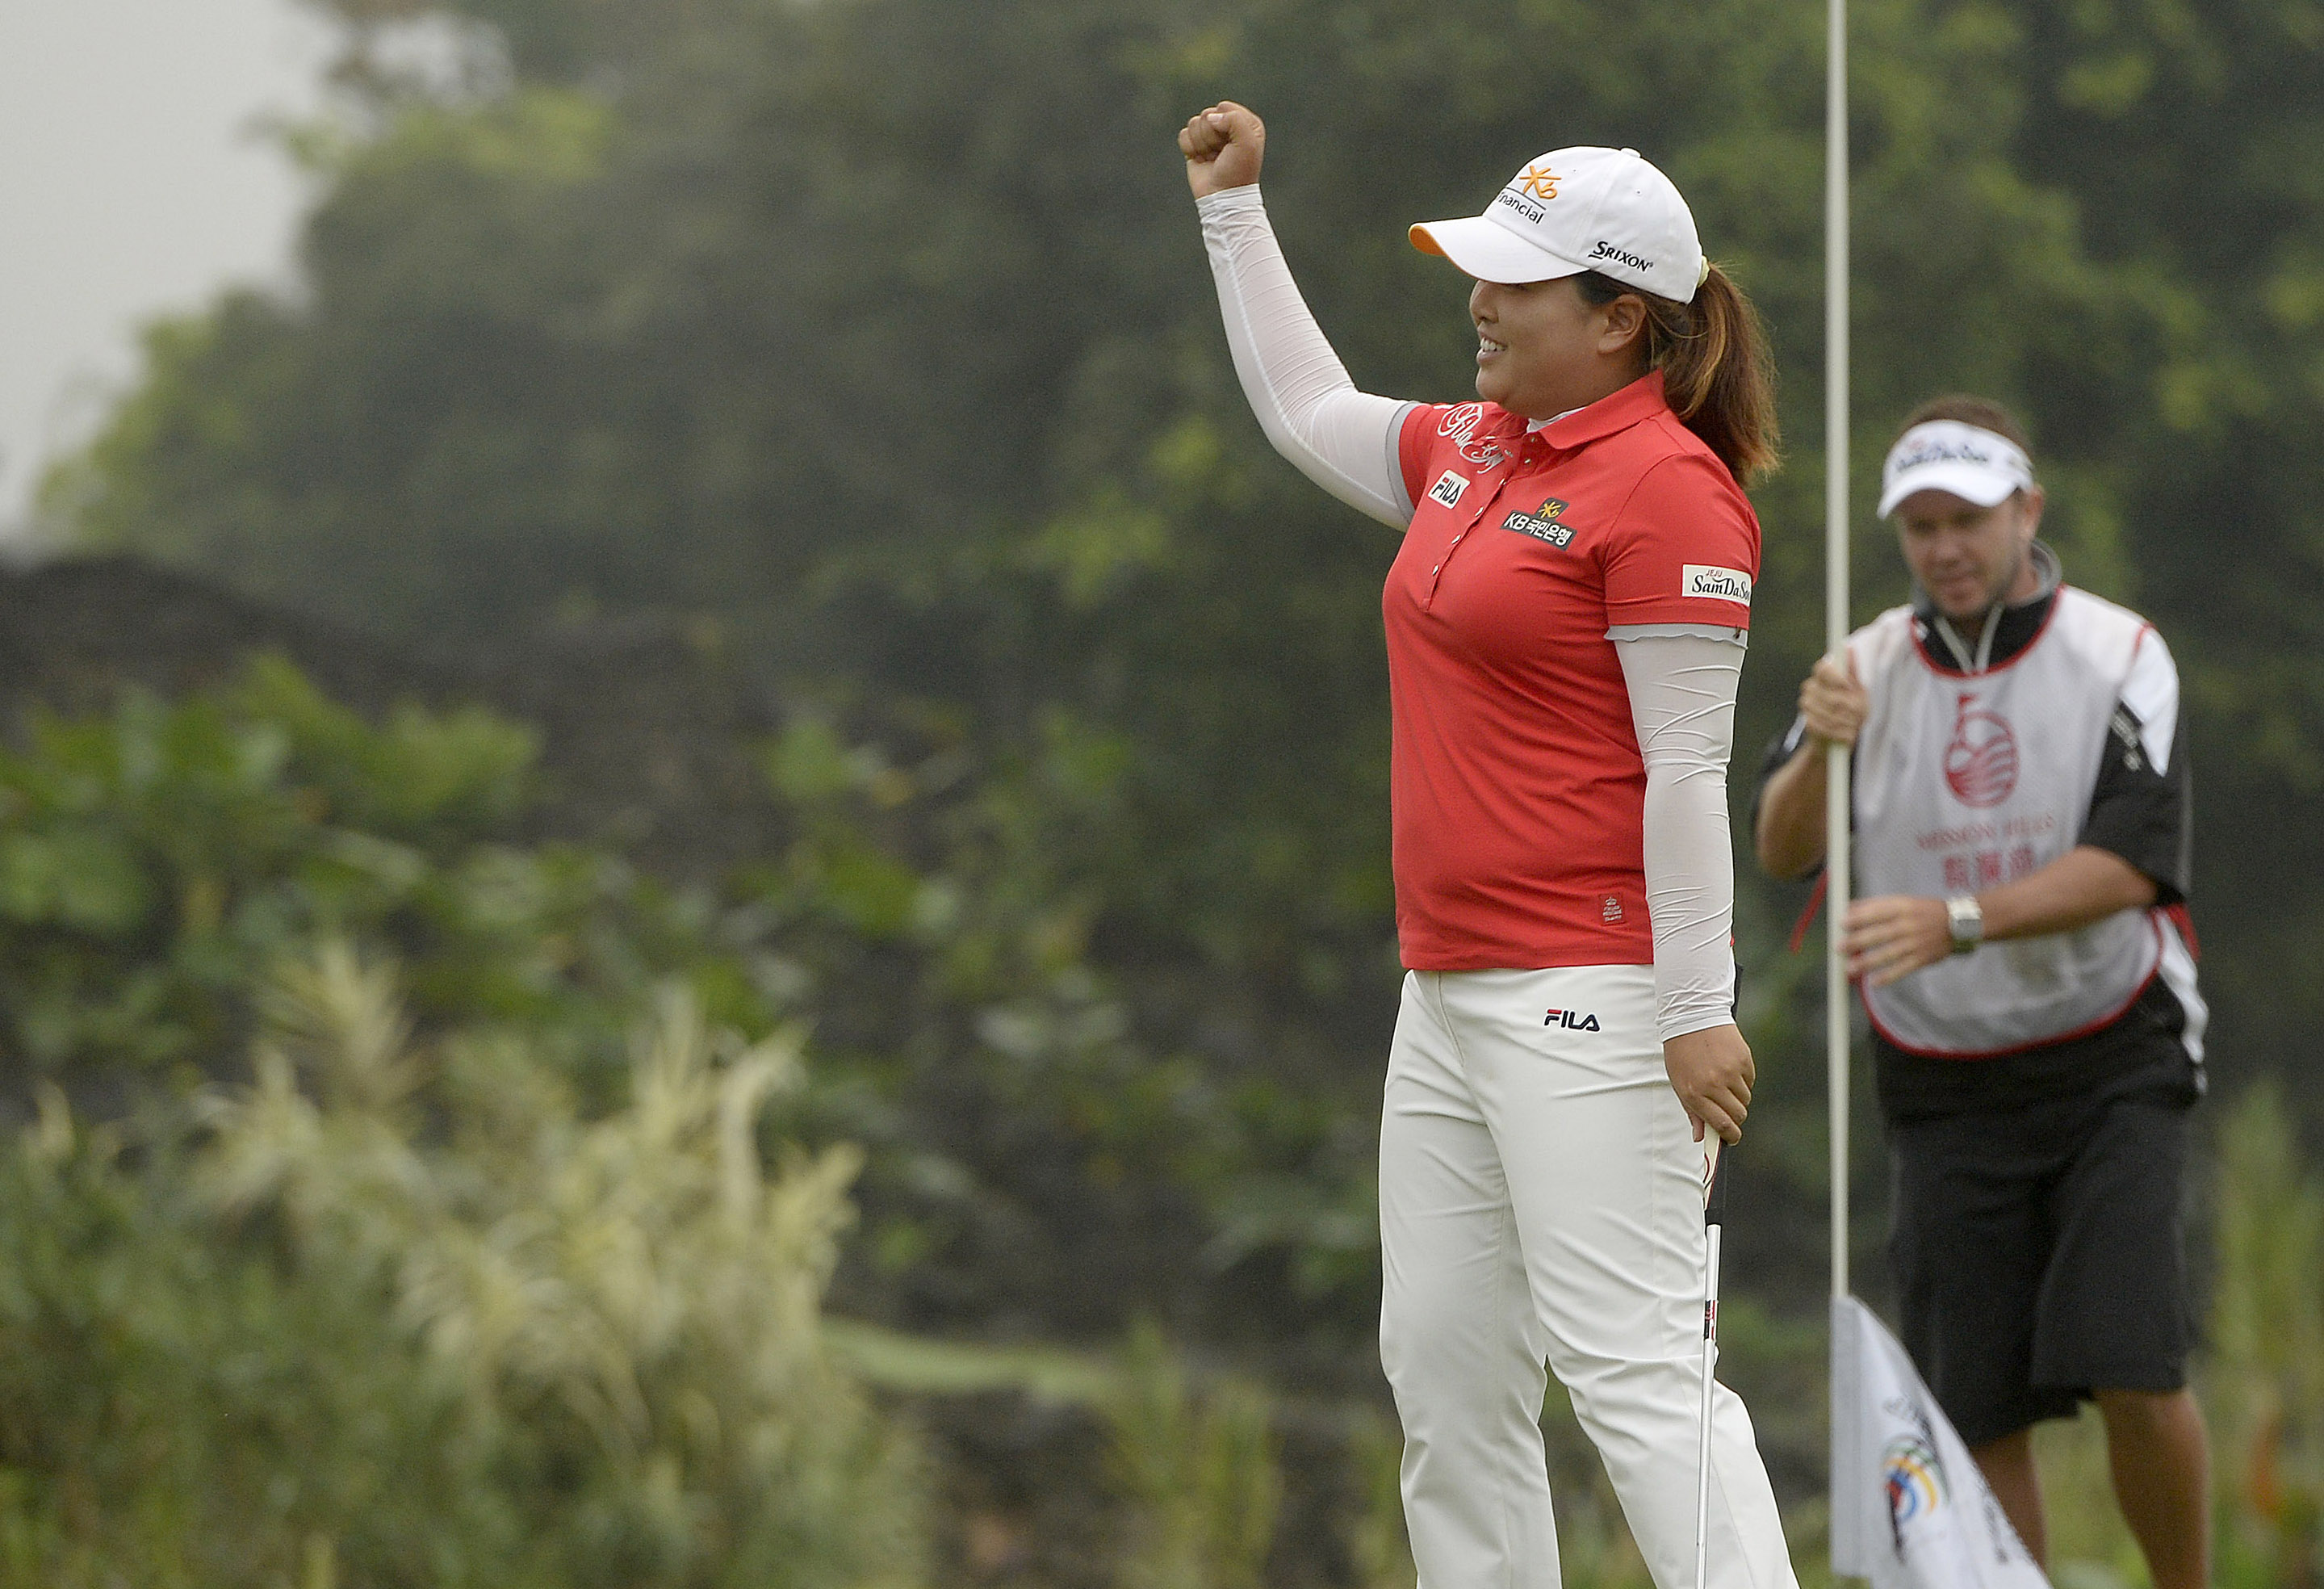 Park Inbee shot a 10-under 62 to take a commanding 3-shot lead at the LPGA Taiwan Championship. (Yonhap)